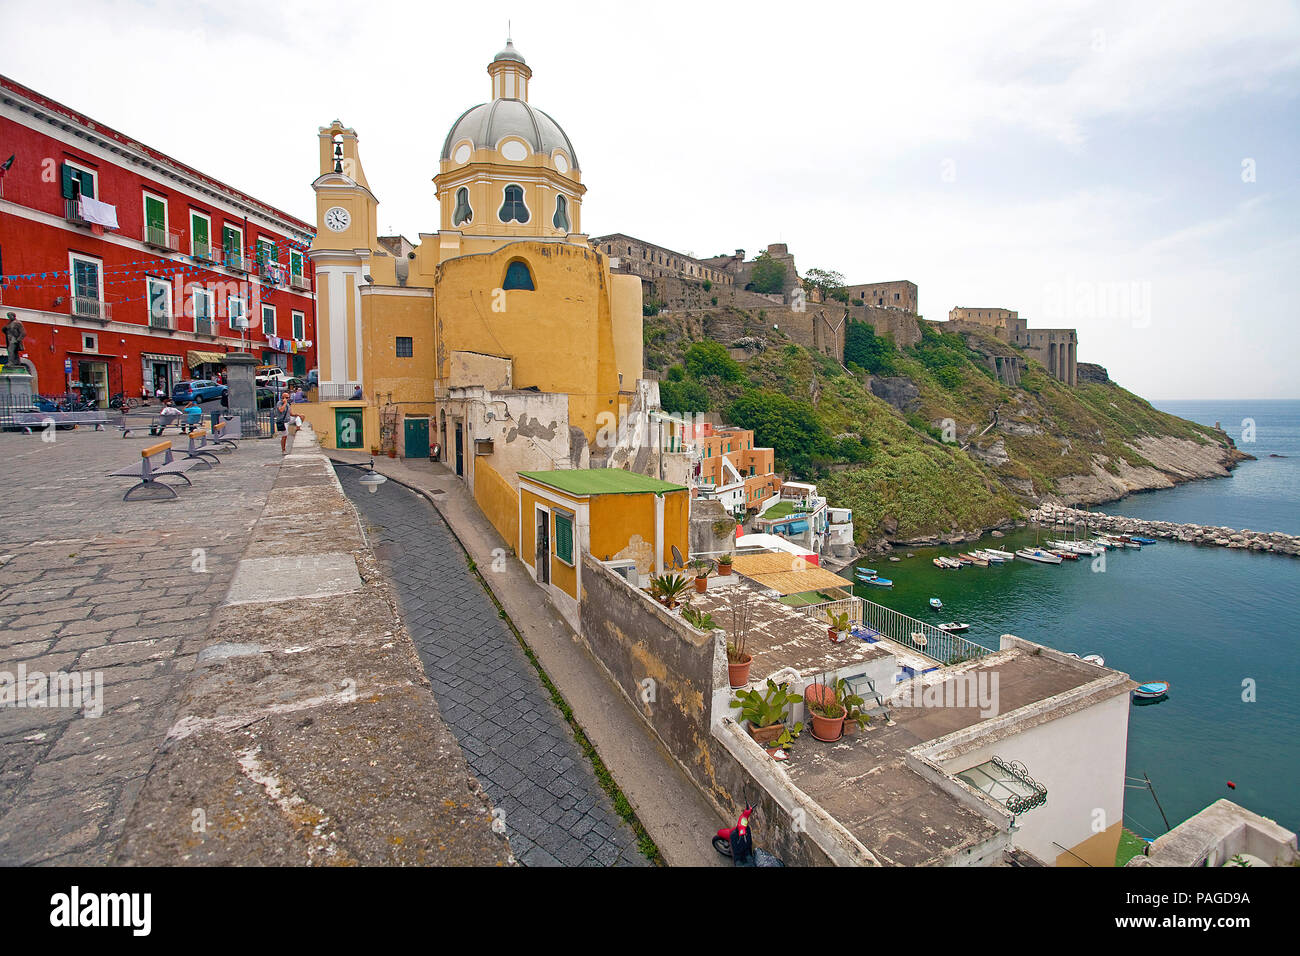 Church Chiesa della Madonna delle Grazie at Piazza dei Martiri and fortress Terra Murata, below Marina di Corricella, Procida, Gulf of Naples, Italy - Stock Image